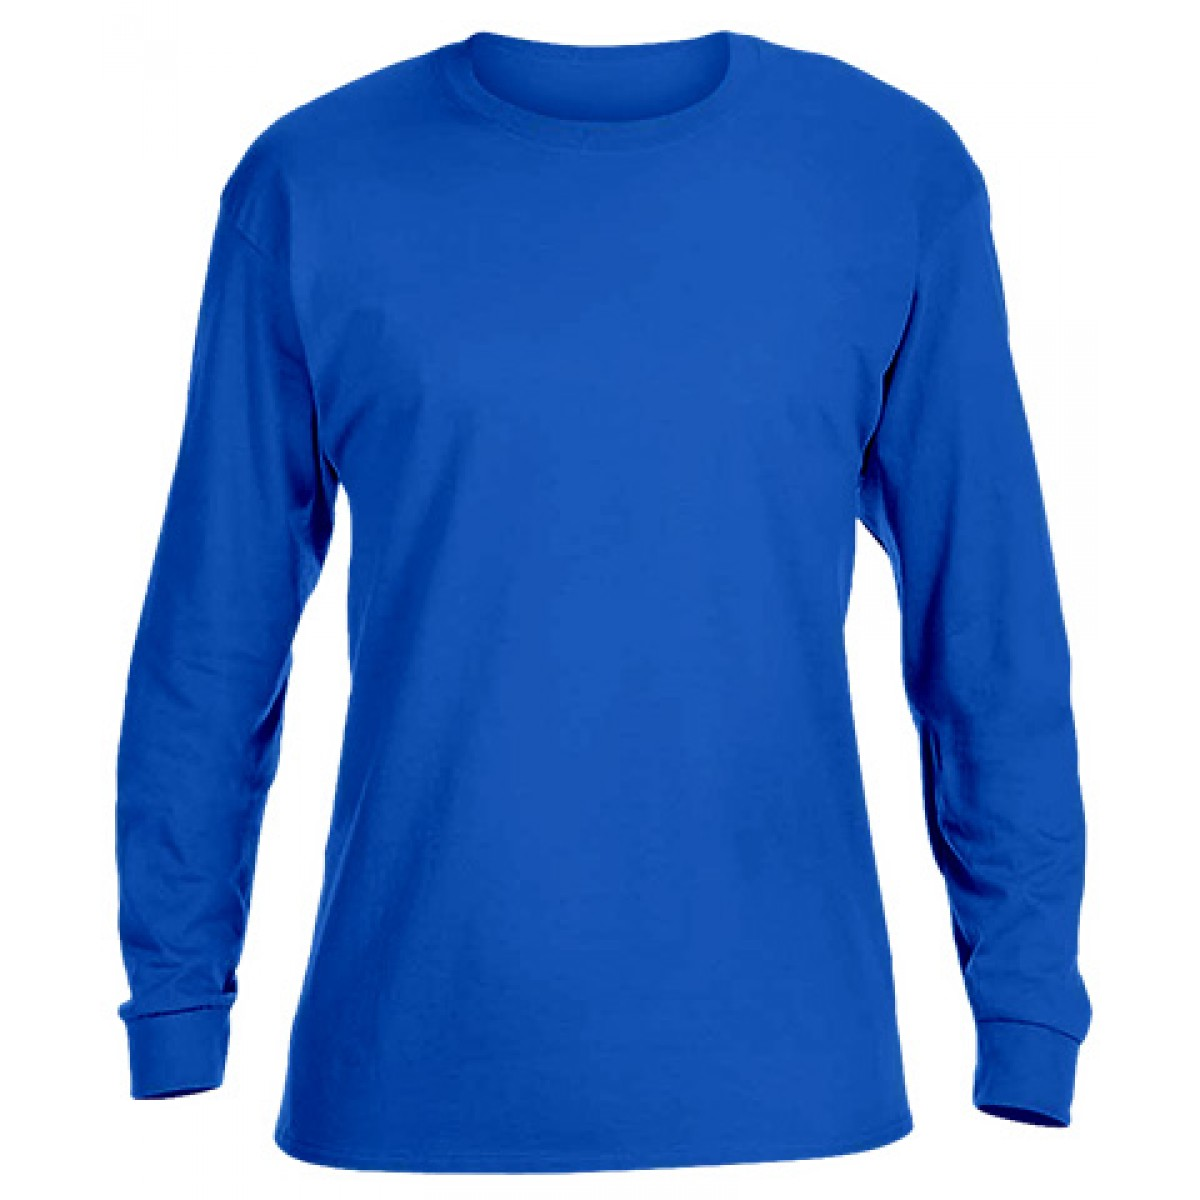 Basic Long Sleeve Crew Neck -Royal Blue-S